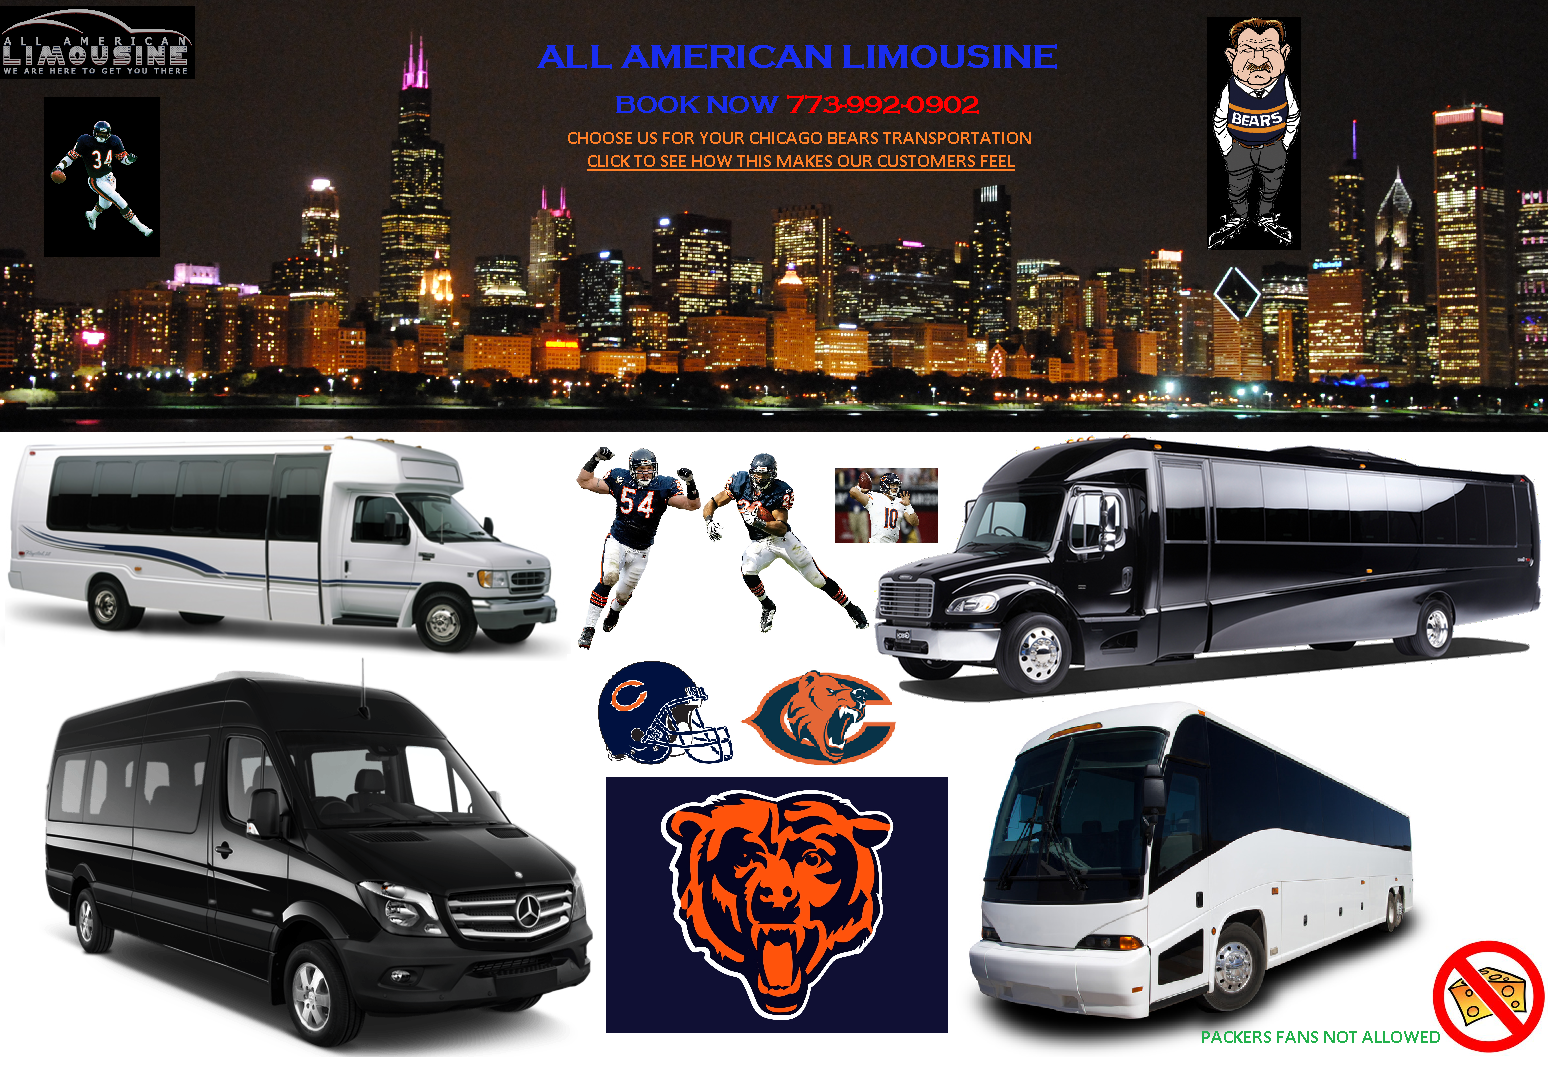 Chicago Airport Limousine Service, Charter Bus Chicago, Charter a Bus Chicago, Charter Bus Rental Chicago, Charter a Bus to Chicago, Charter Bus to O'Hare, Charter Bus to Midway Book, Hire, Rent, Reserve White Coach Bus